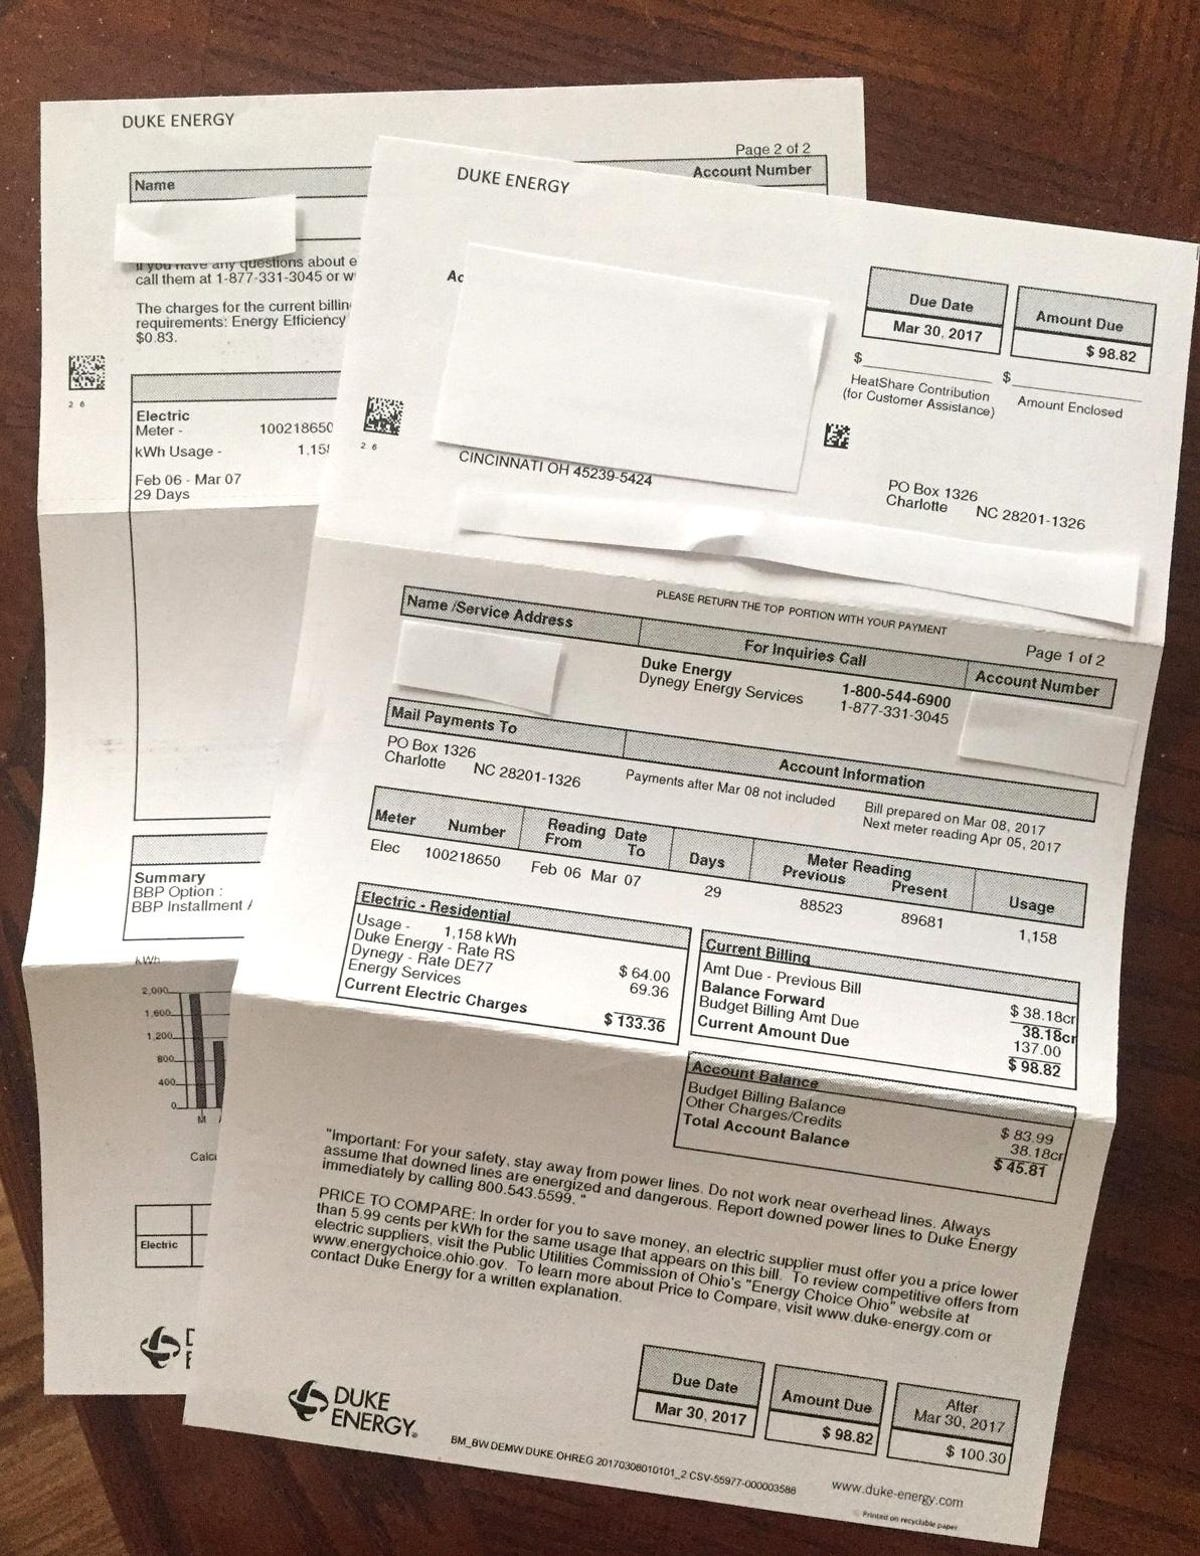 West Side residents save millions with energy plans